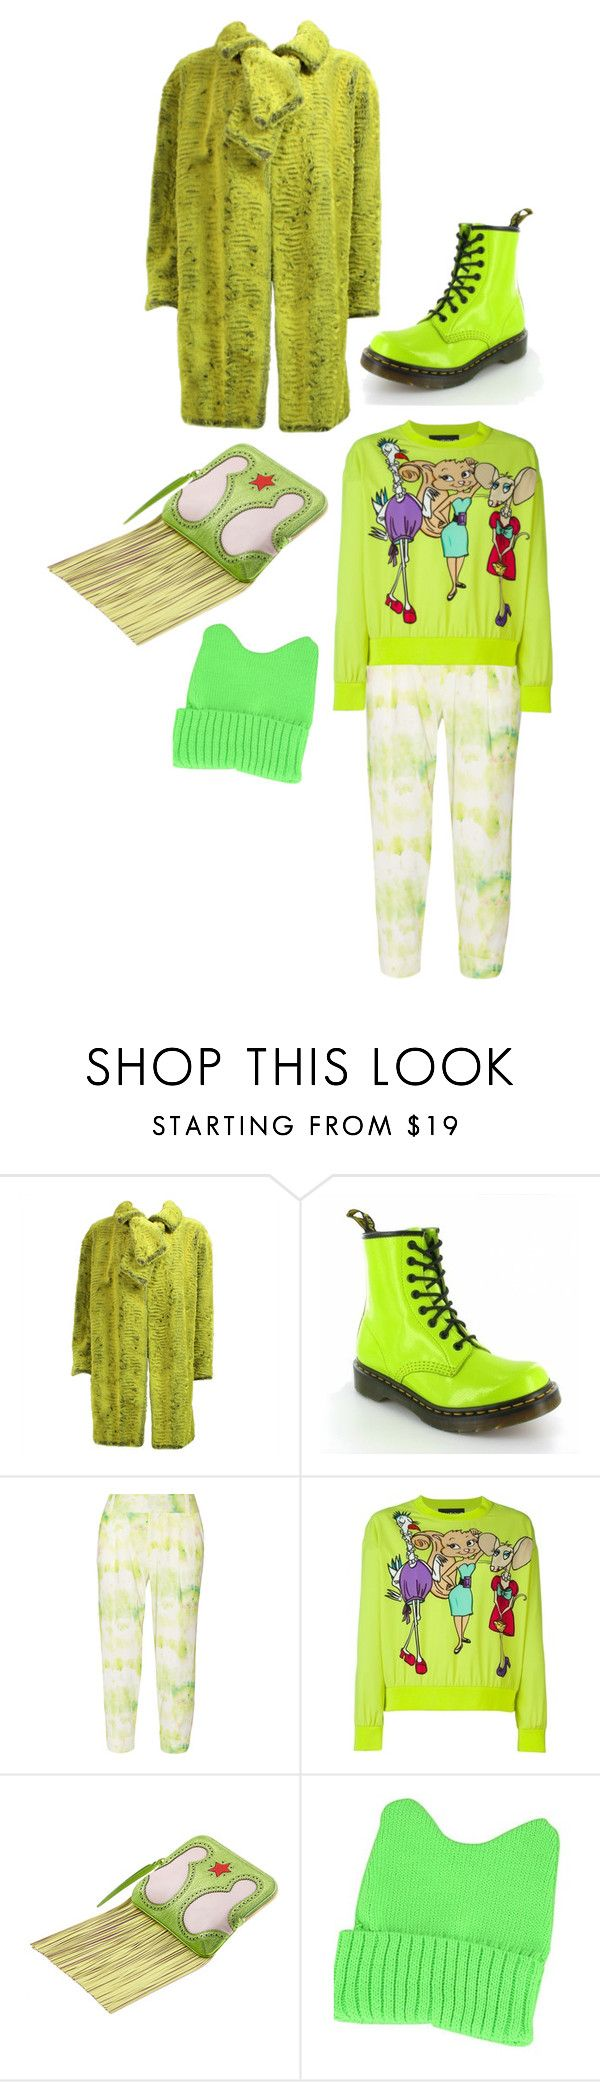 """""""Lime green cartoon"""" by perpetto ❤ liked on Polyvore featuring Christian Lacroix, Dr. Martens, Alice + Olivia, Boutique Moschino, The Volon and Emi Jewellery"""